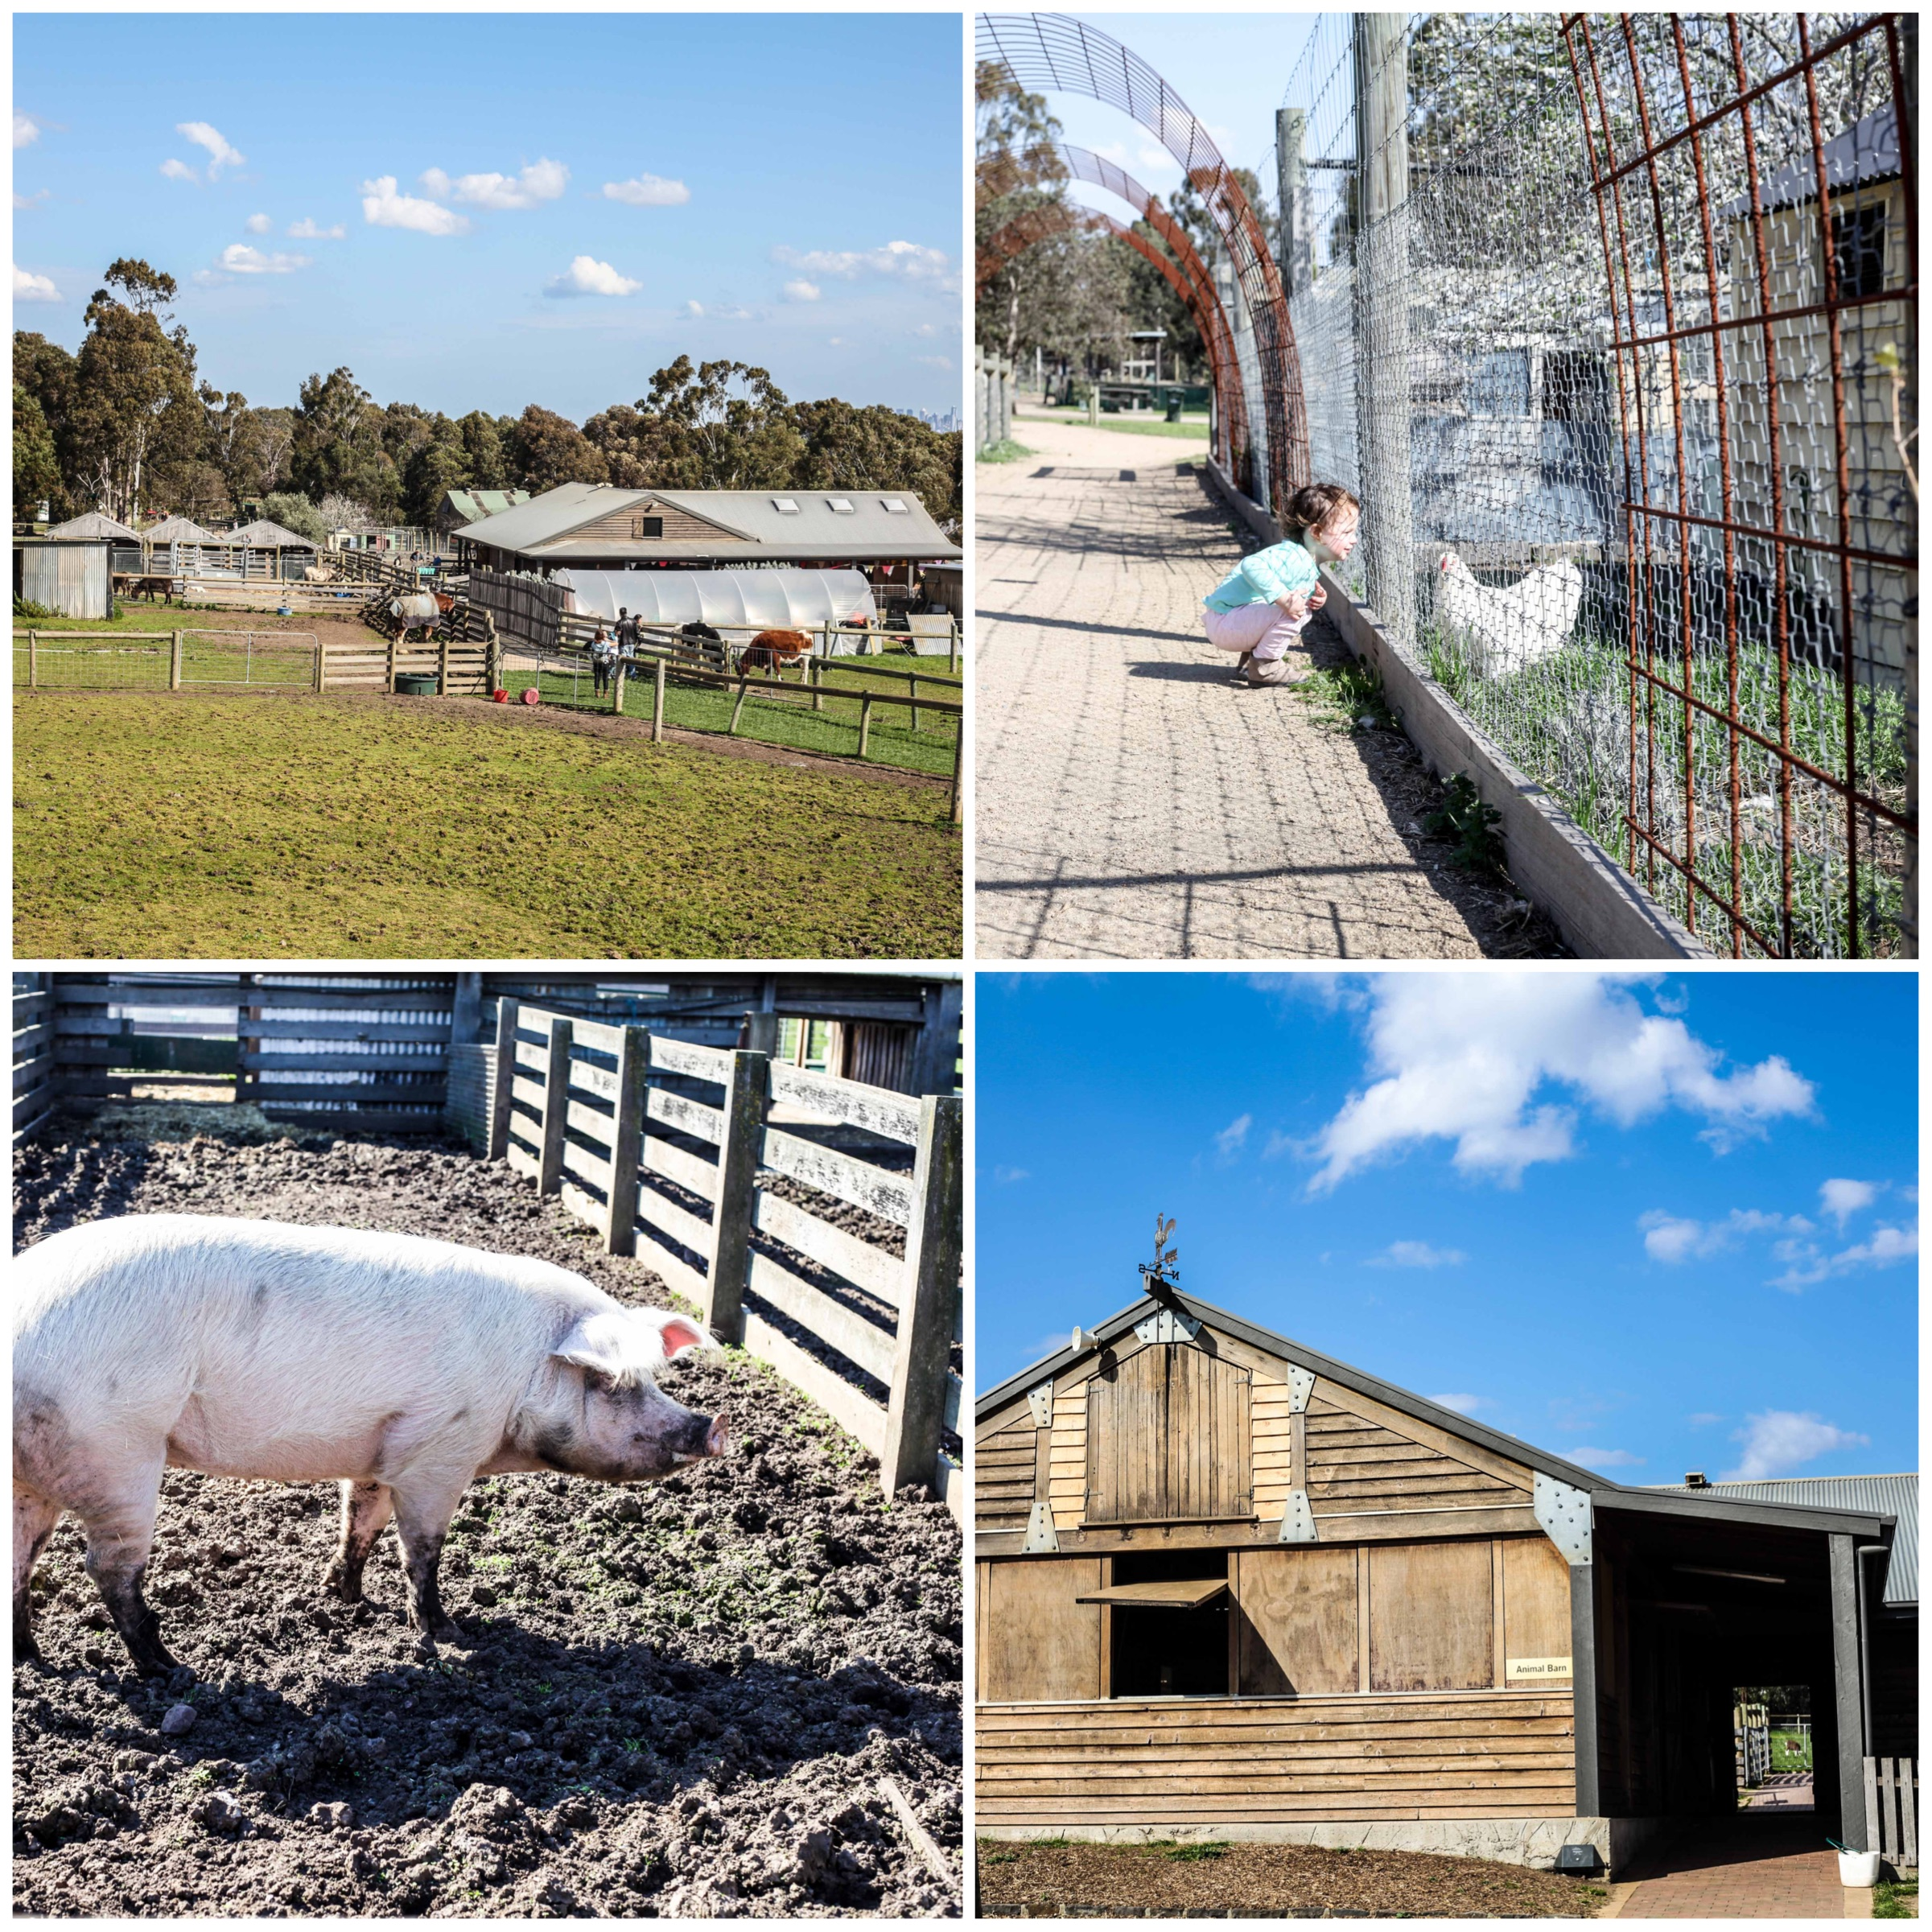 Mamma Knows East - Bundoora Park Farm